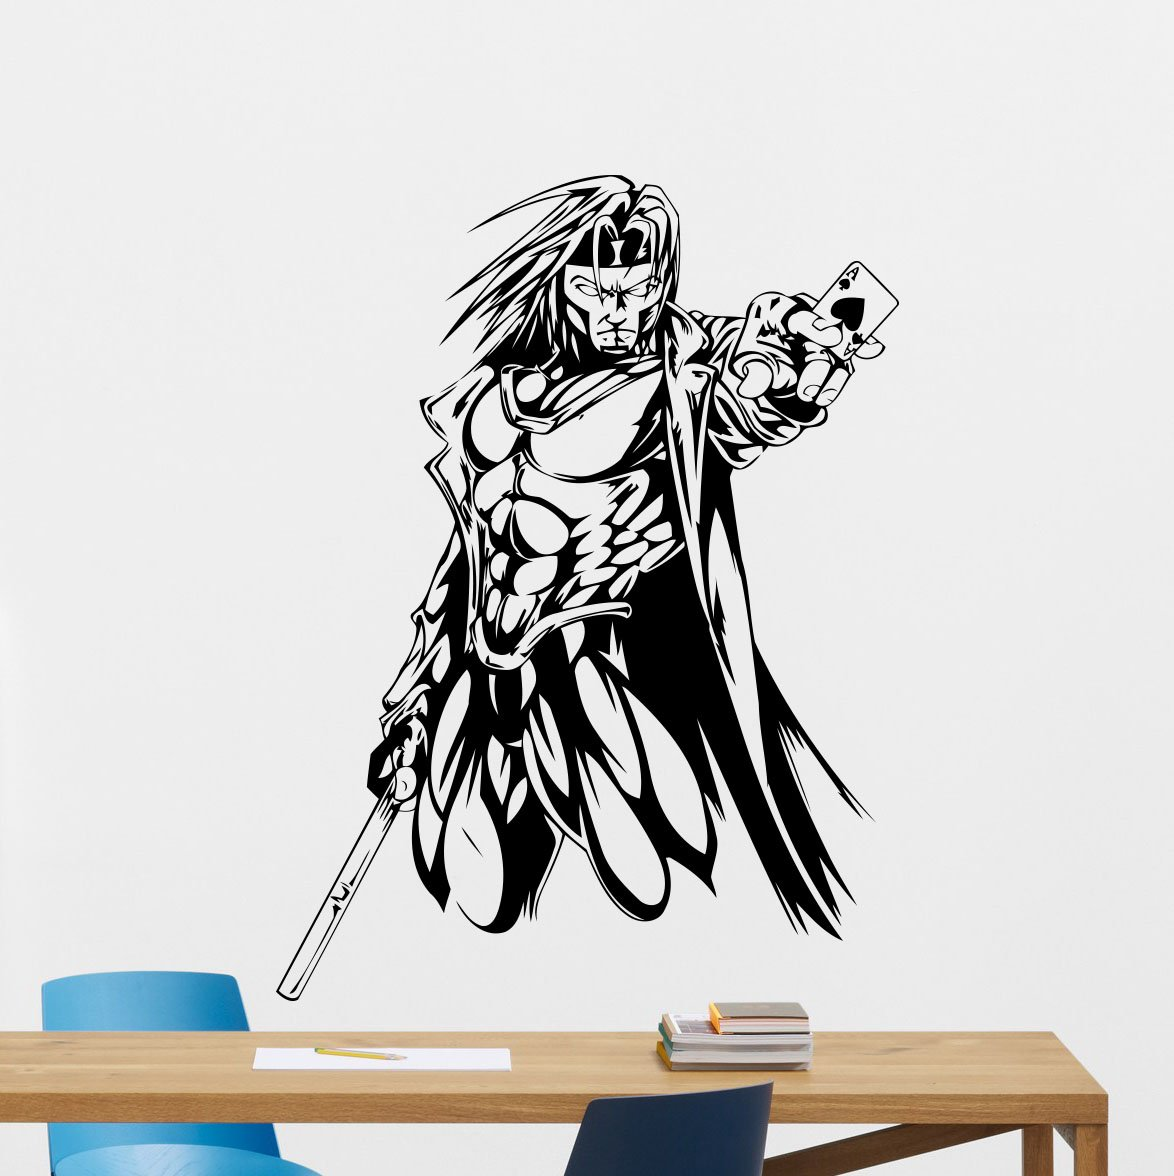 Amazon gambit wall vinyl decal x men marvel comics gambit amazon gambit wall vinyl decal x men marvel comics gambit superhero wall sticker video game gaming wall decor cool wall art kids teen room wall design amipublicfo Gallery